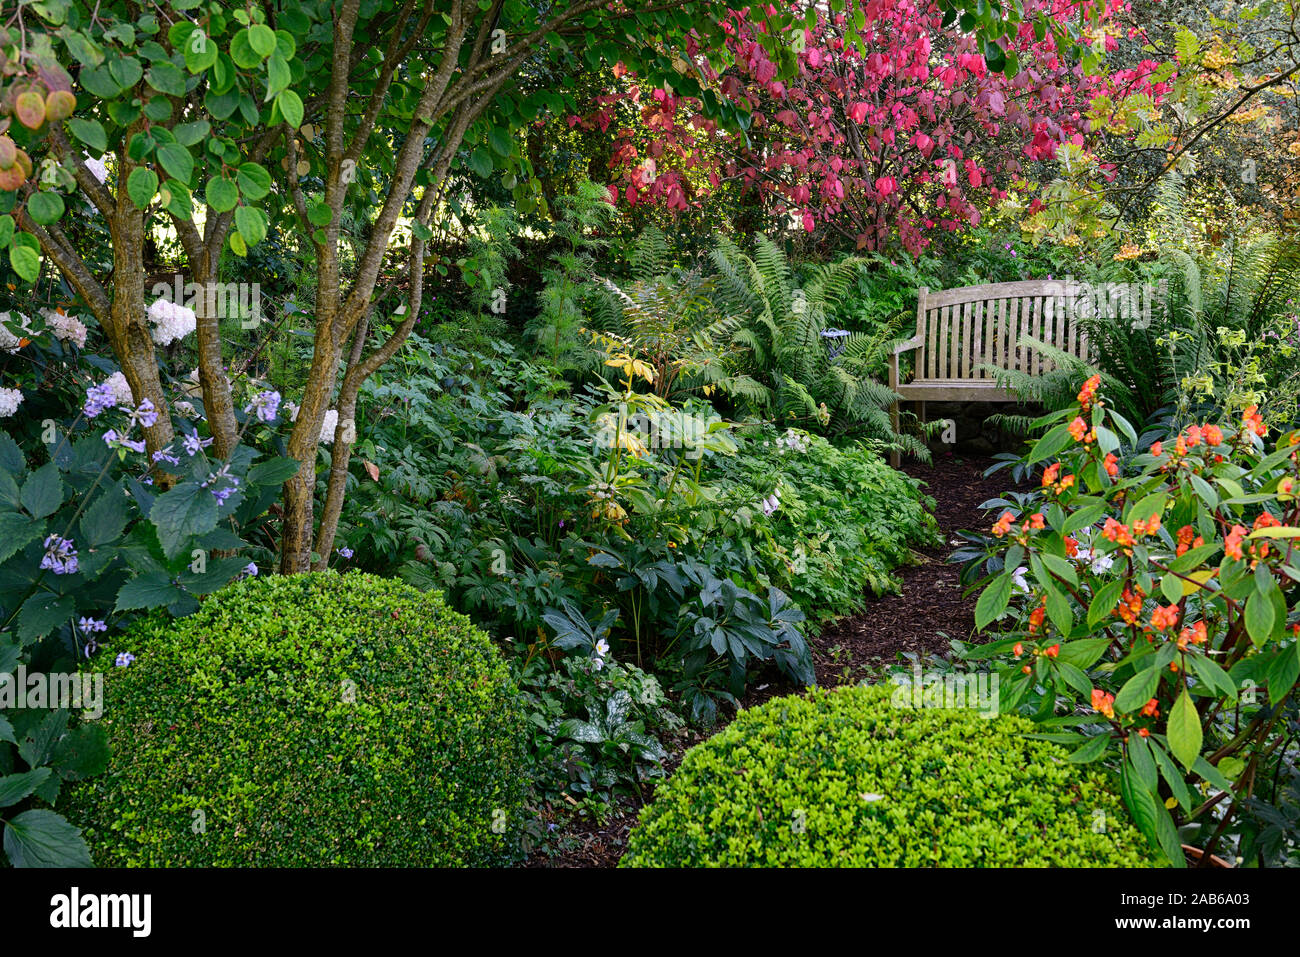 Shaded Garden Seat Stock Photos Shaded Garden Seat Stock Images